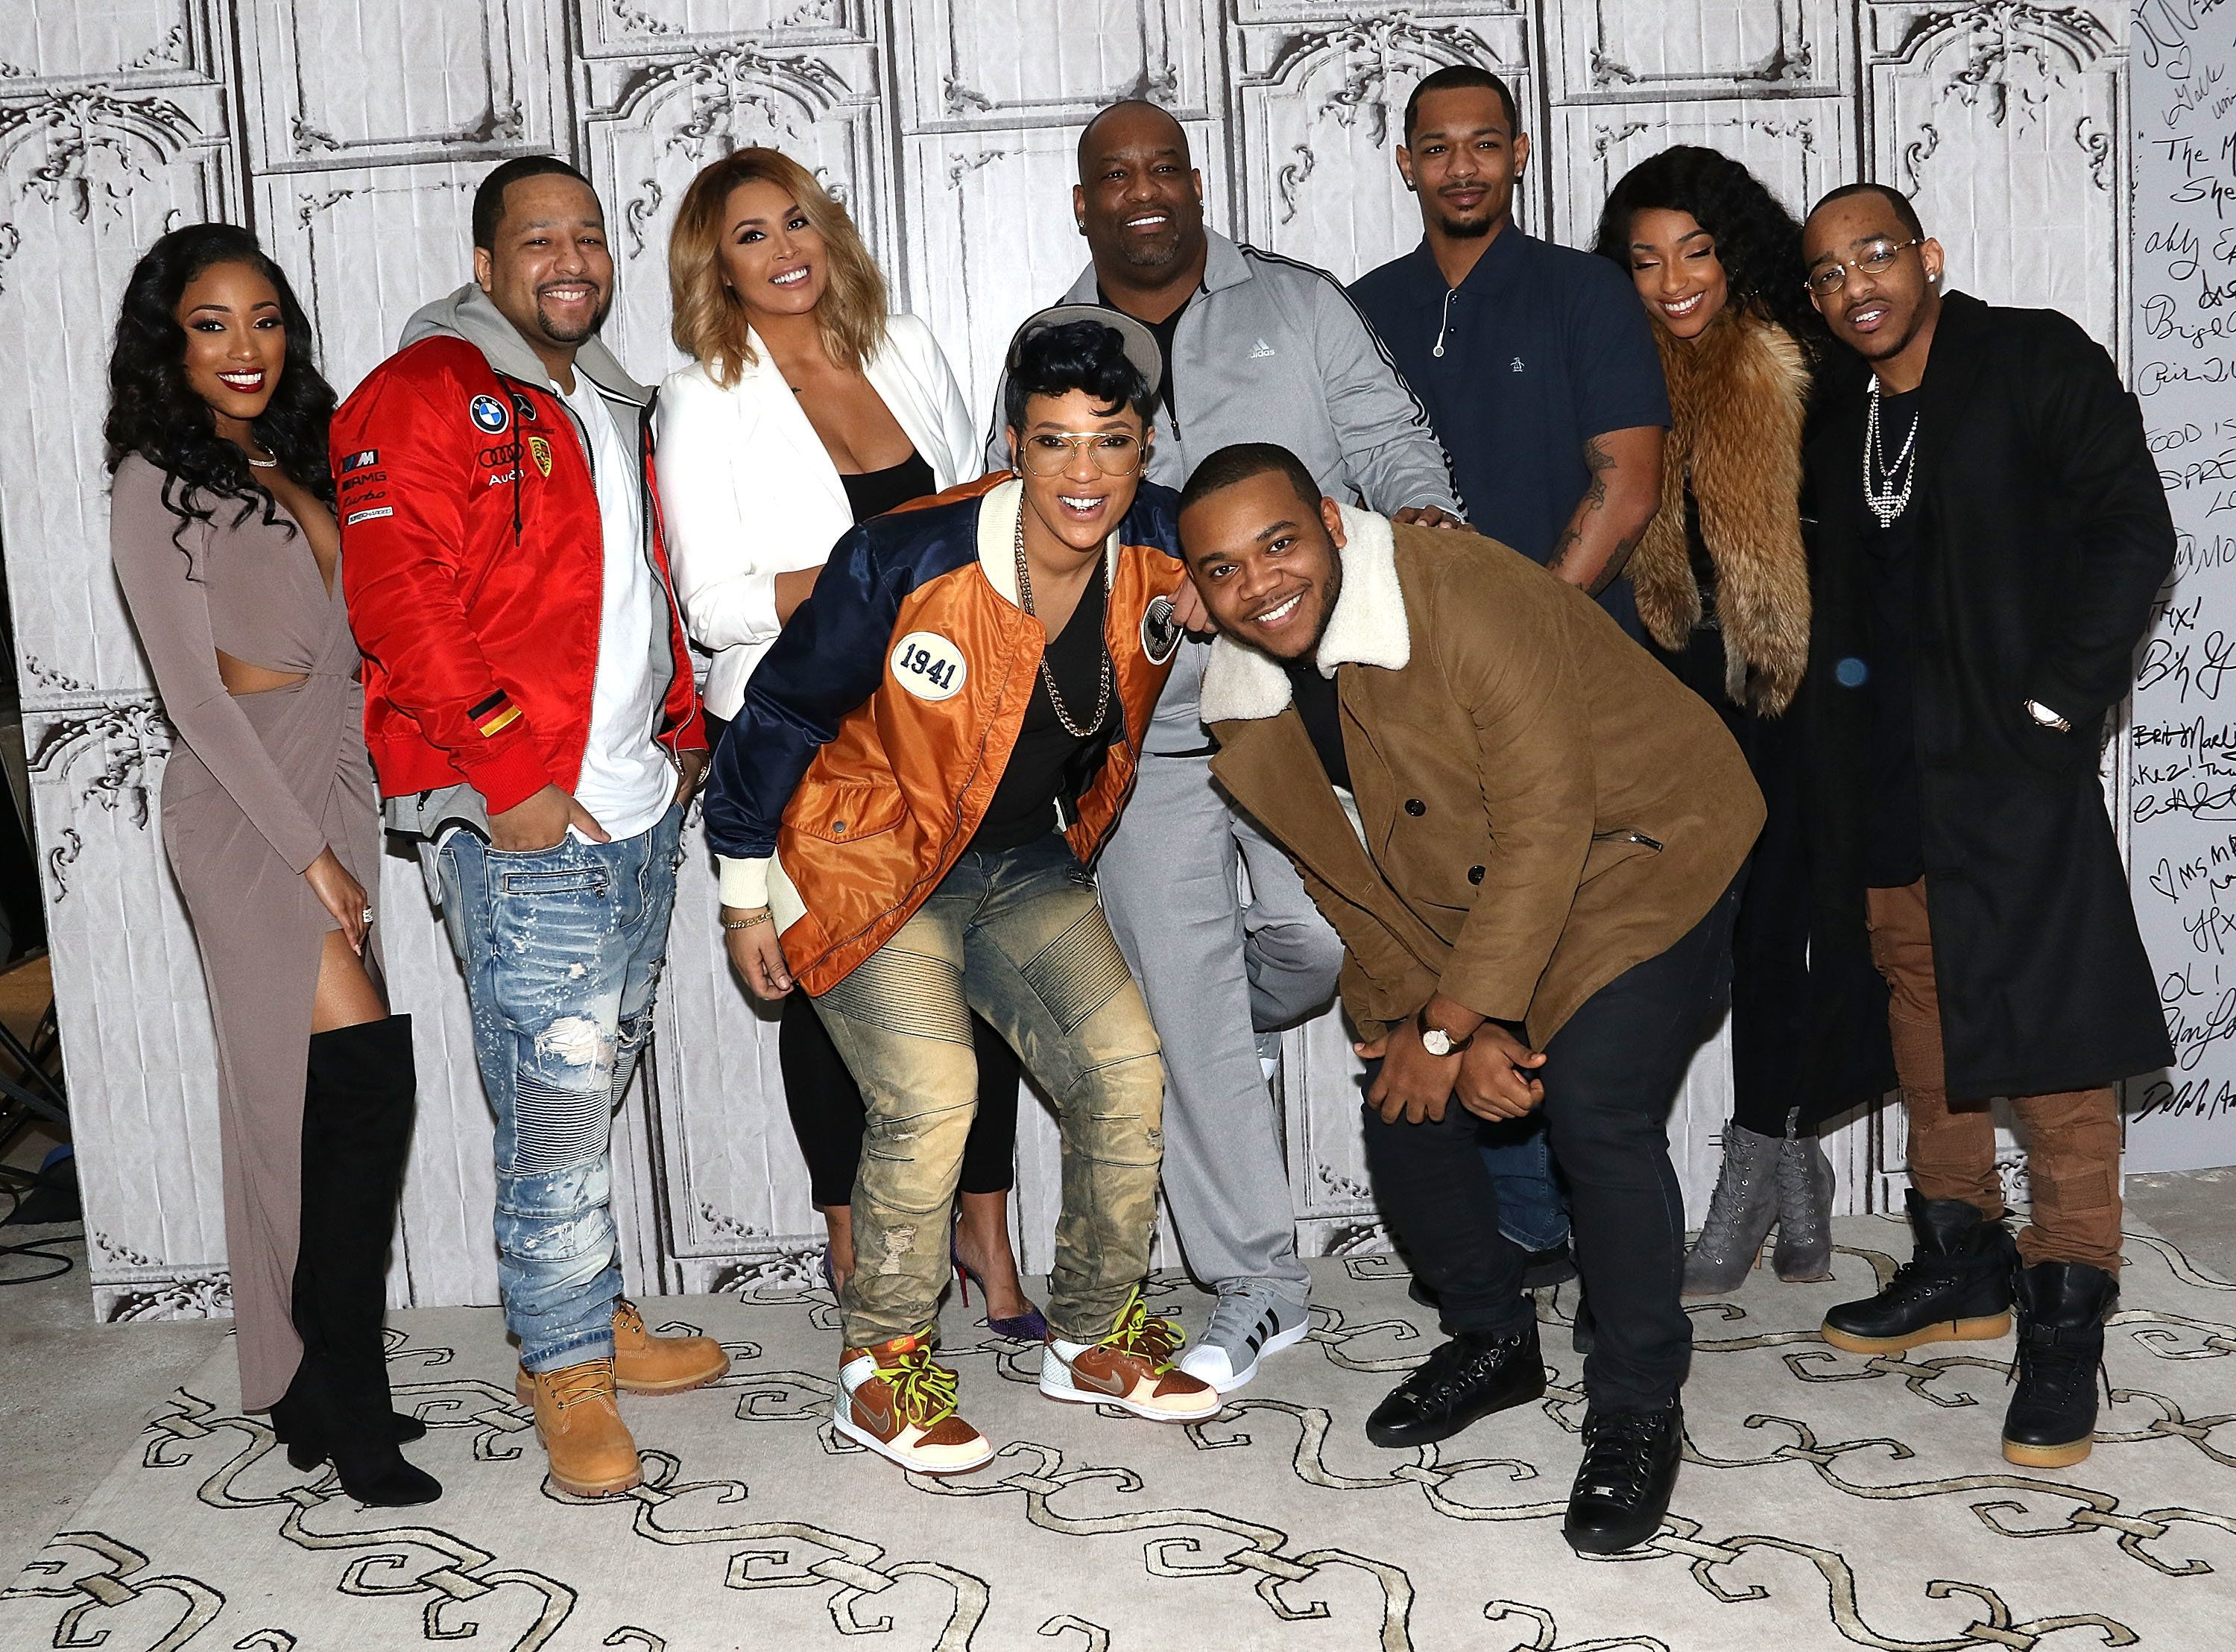 NEW YORK, NY - JANUARY 10:  (L-R back row) Eseni Elllington, Leland Robinson Jr., Samia Reece, Leland Robinson Sr., Antonio Jordan, LeA Robinson, Darnell Robinson, (front row L-R) Shanell 'Lady Luck' Jones and Rhondo Robinson, Jr. of the Robinsons attend Build Presents to discuss 'First Family of Hip Hop' at AOL HQ on January 10, 2017 in New York City.  (Photo by Laura Cavanaugh/FilmMagic)